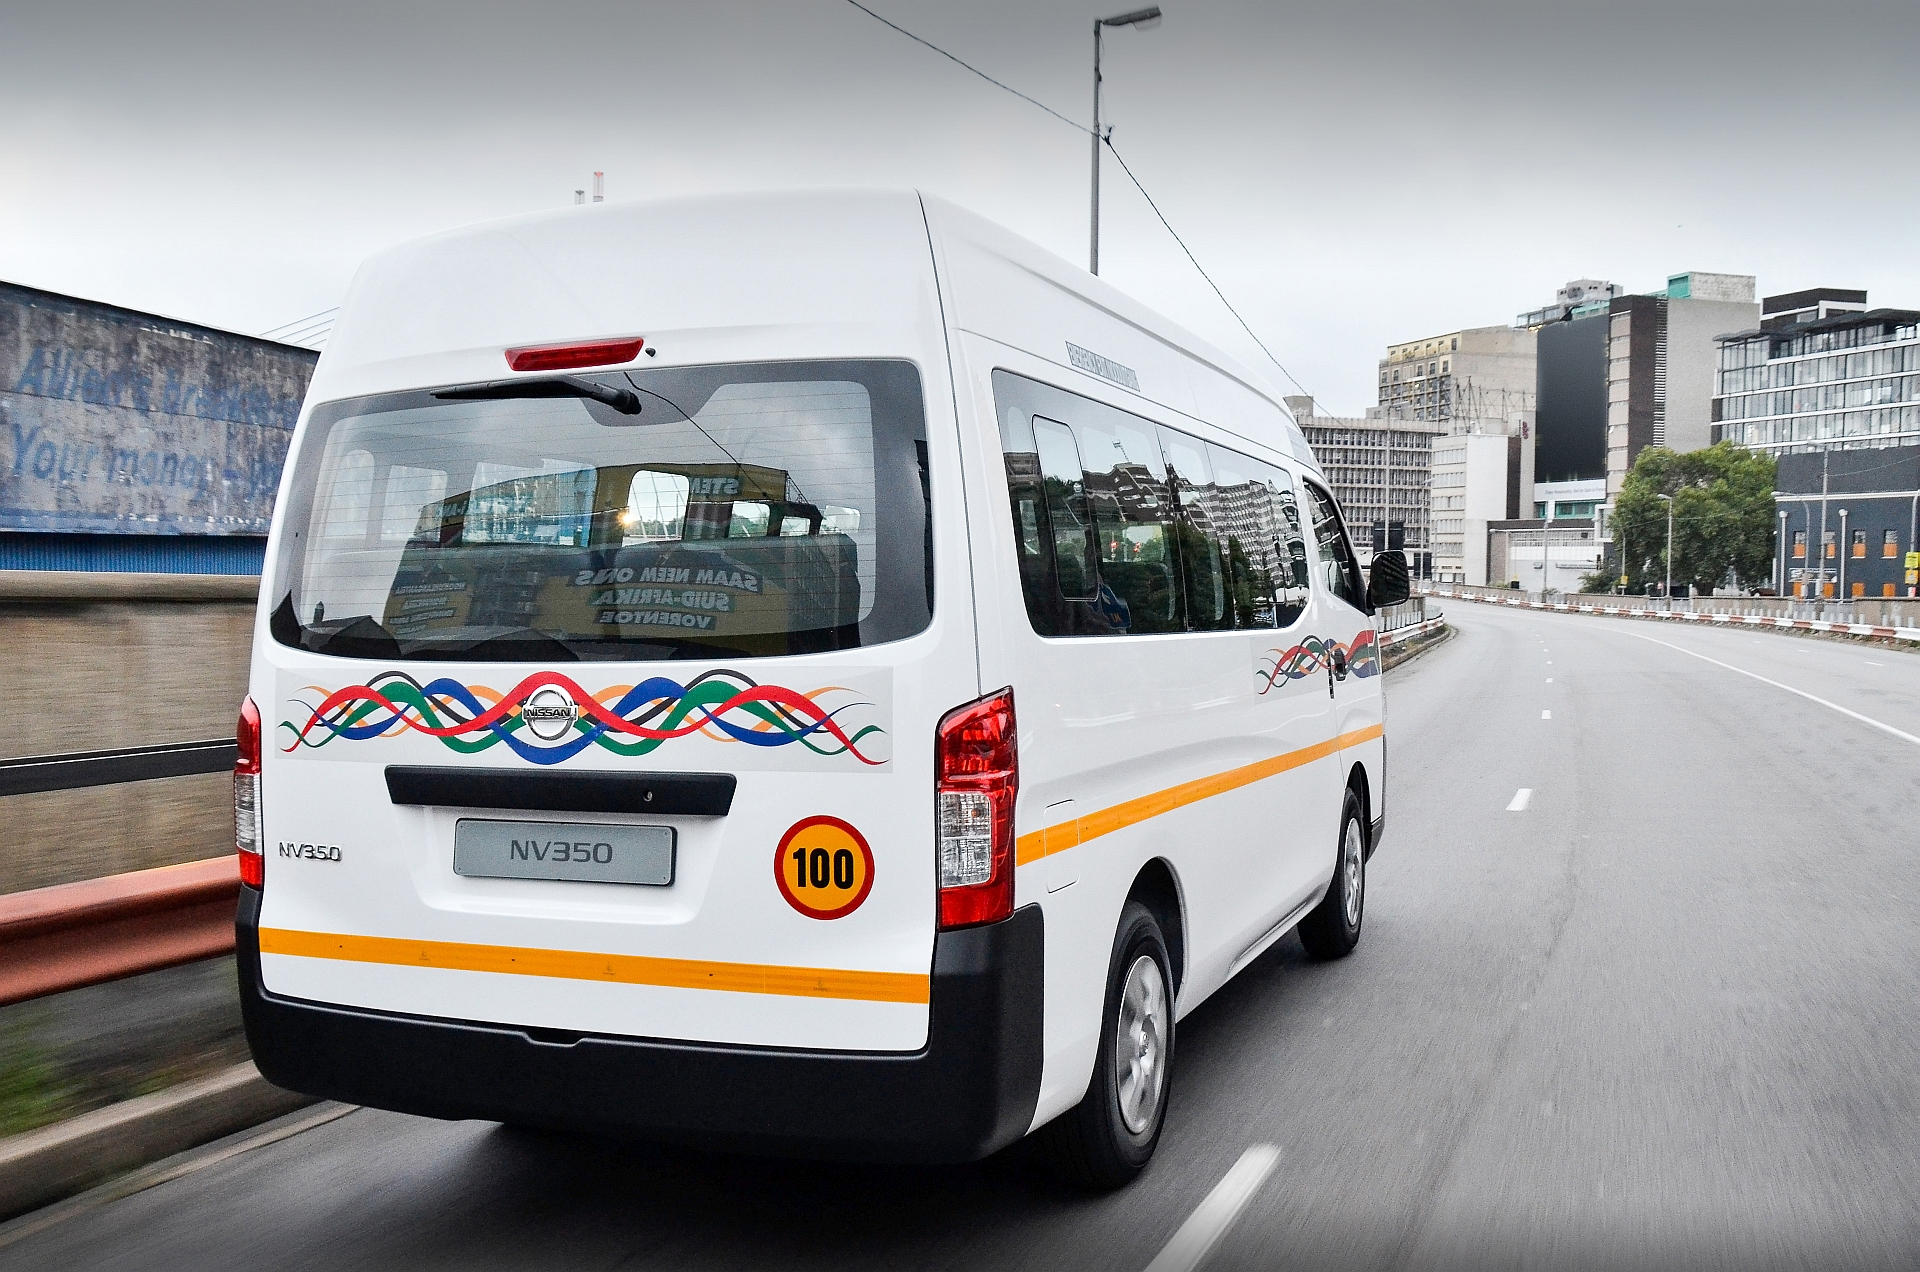 This is what all south african taxis will have to look like in 6 months